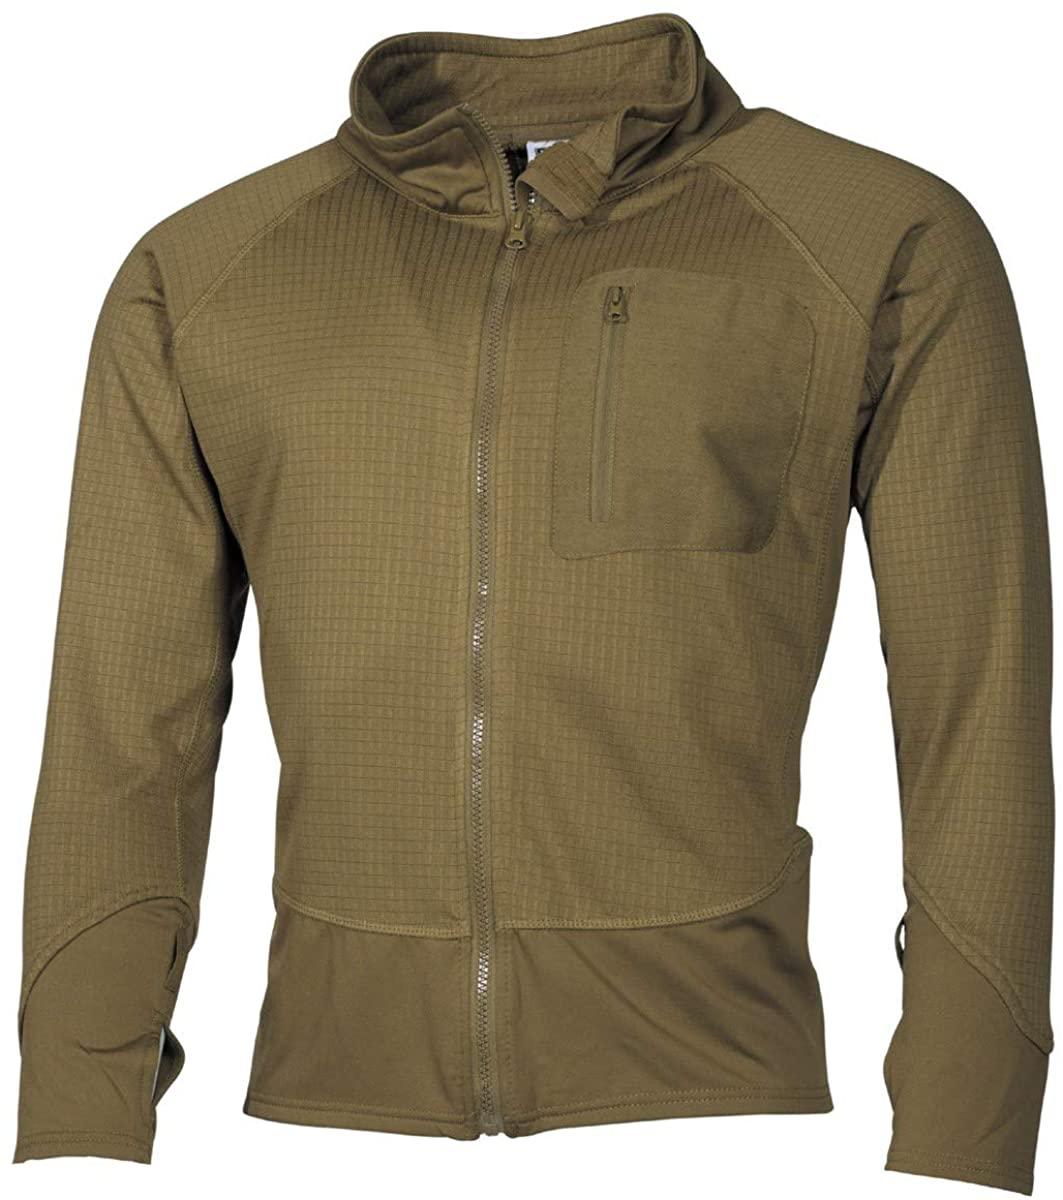 MFH Men's US Tactical Soft Shell Jacket Coyote